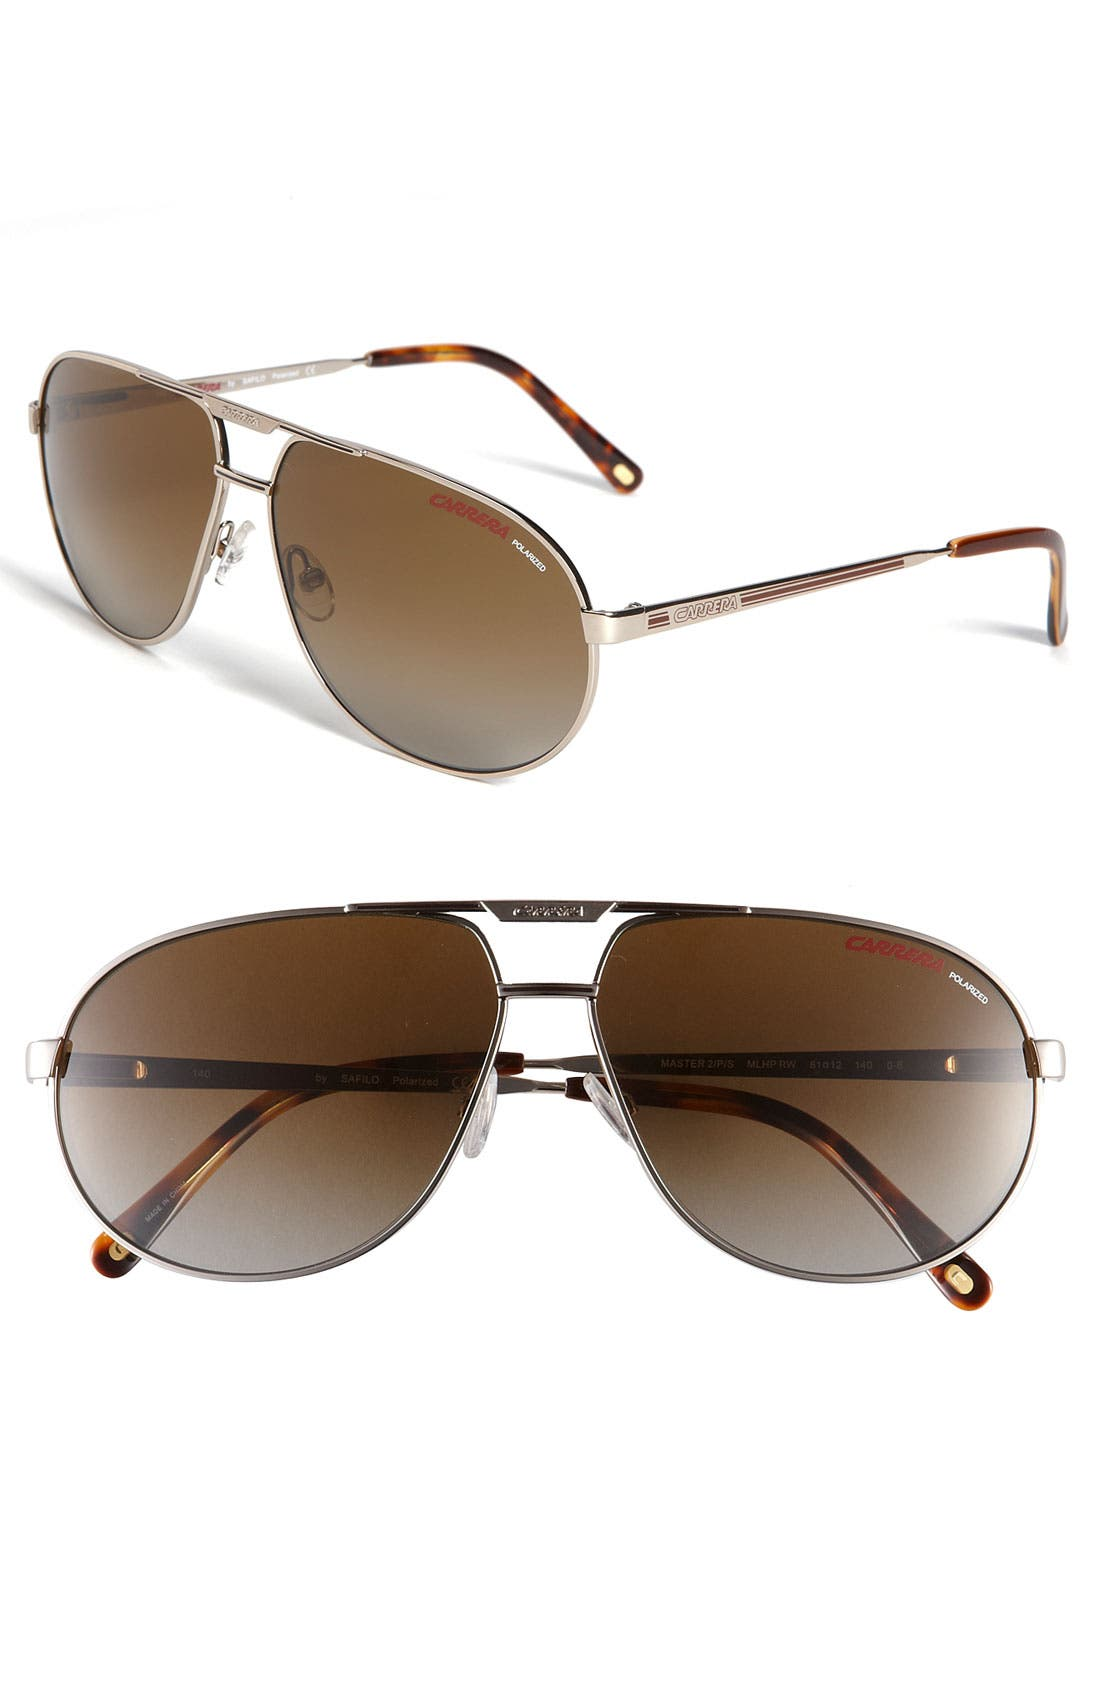 Main Image - Carrera Eyewear 'Master 2' 61mm Polarized Aviator Sunglasses